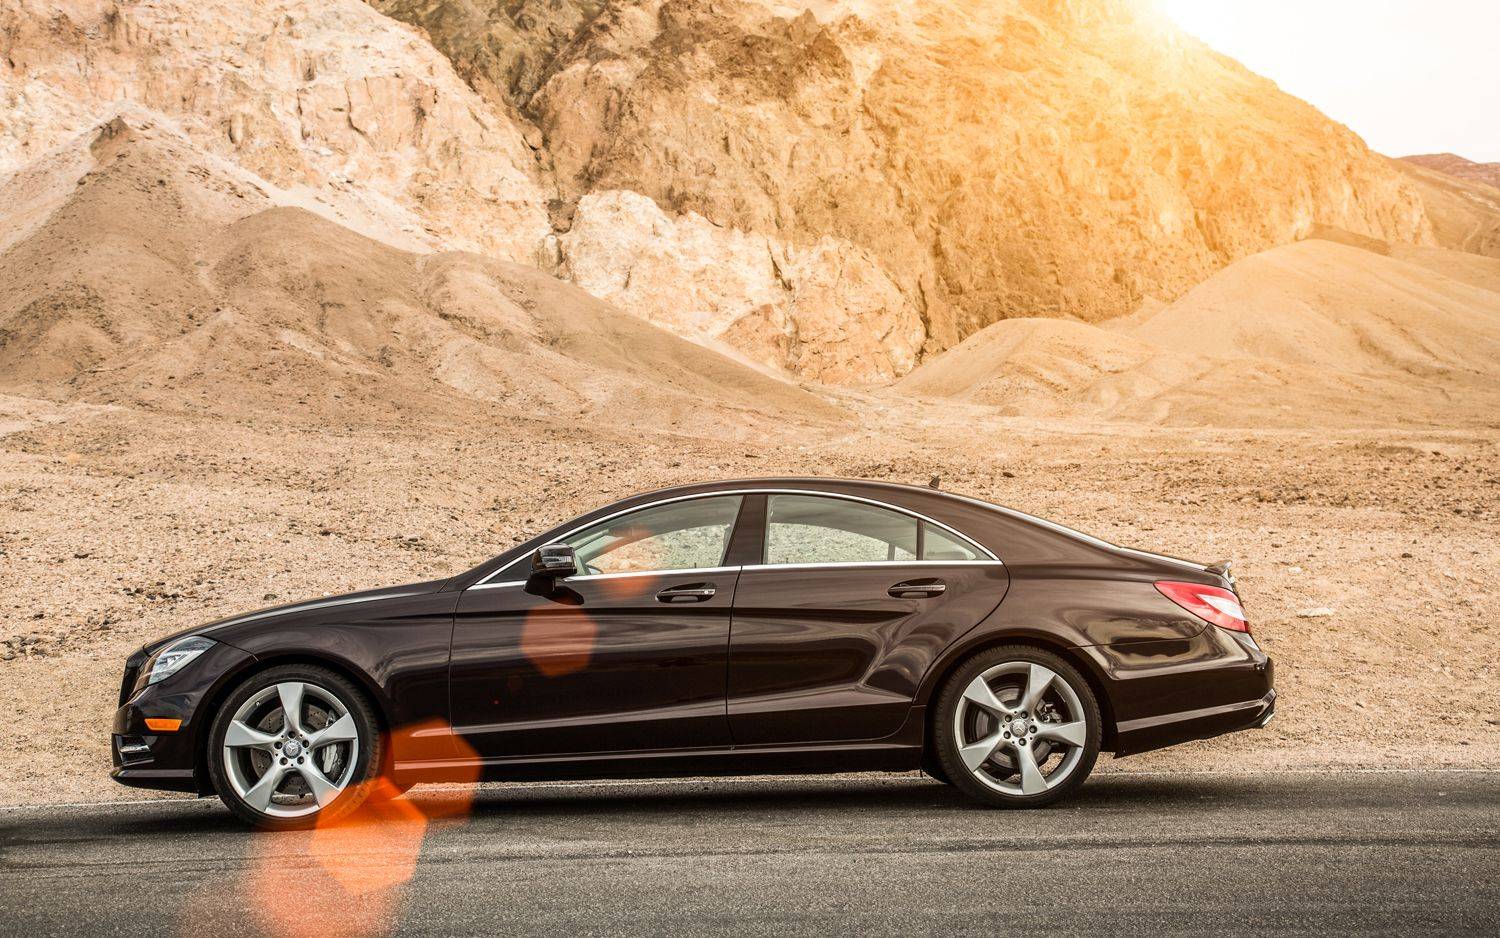 Mercedes Benz CLS My Rides Pinterest The Ojays - Audi s7 vs bmw 650i gran coupe